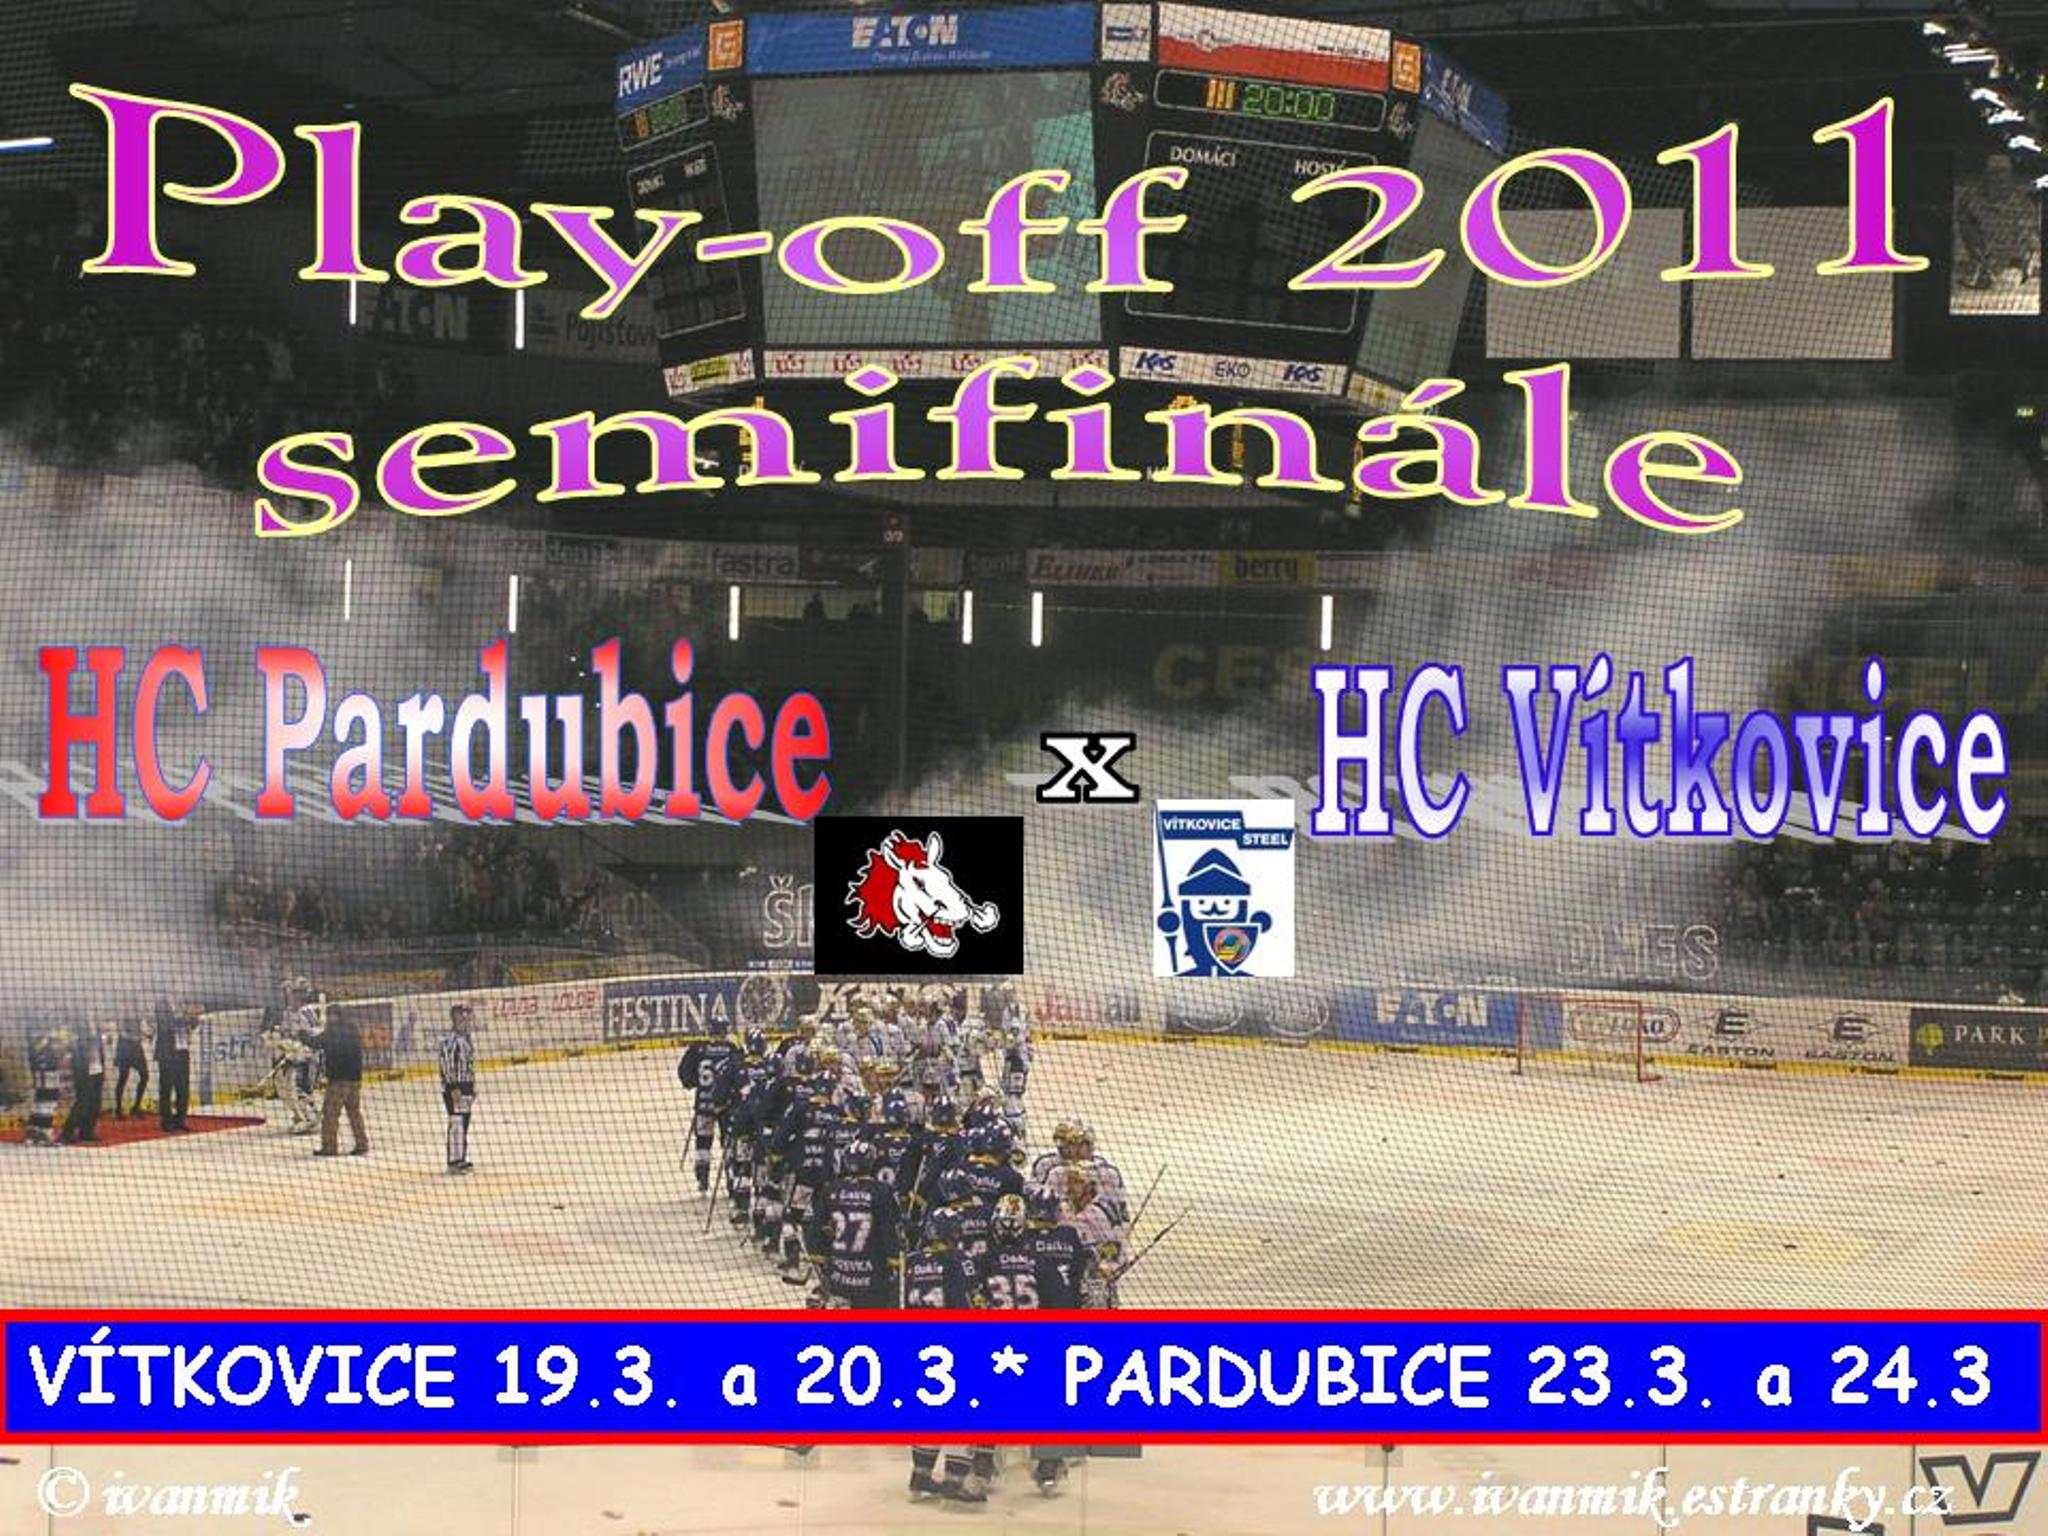 tapeta-semifinale-play-off-2011.jpg